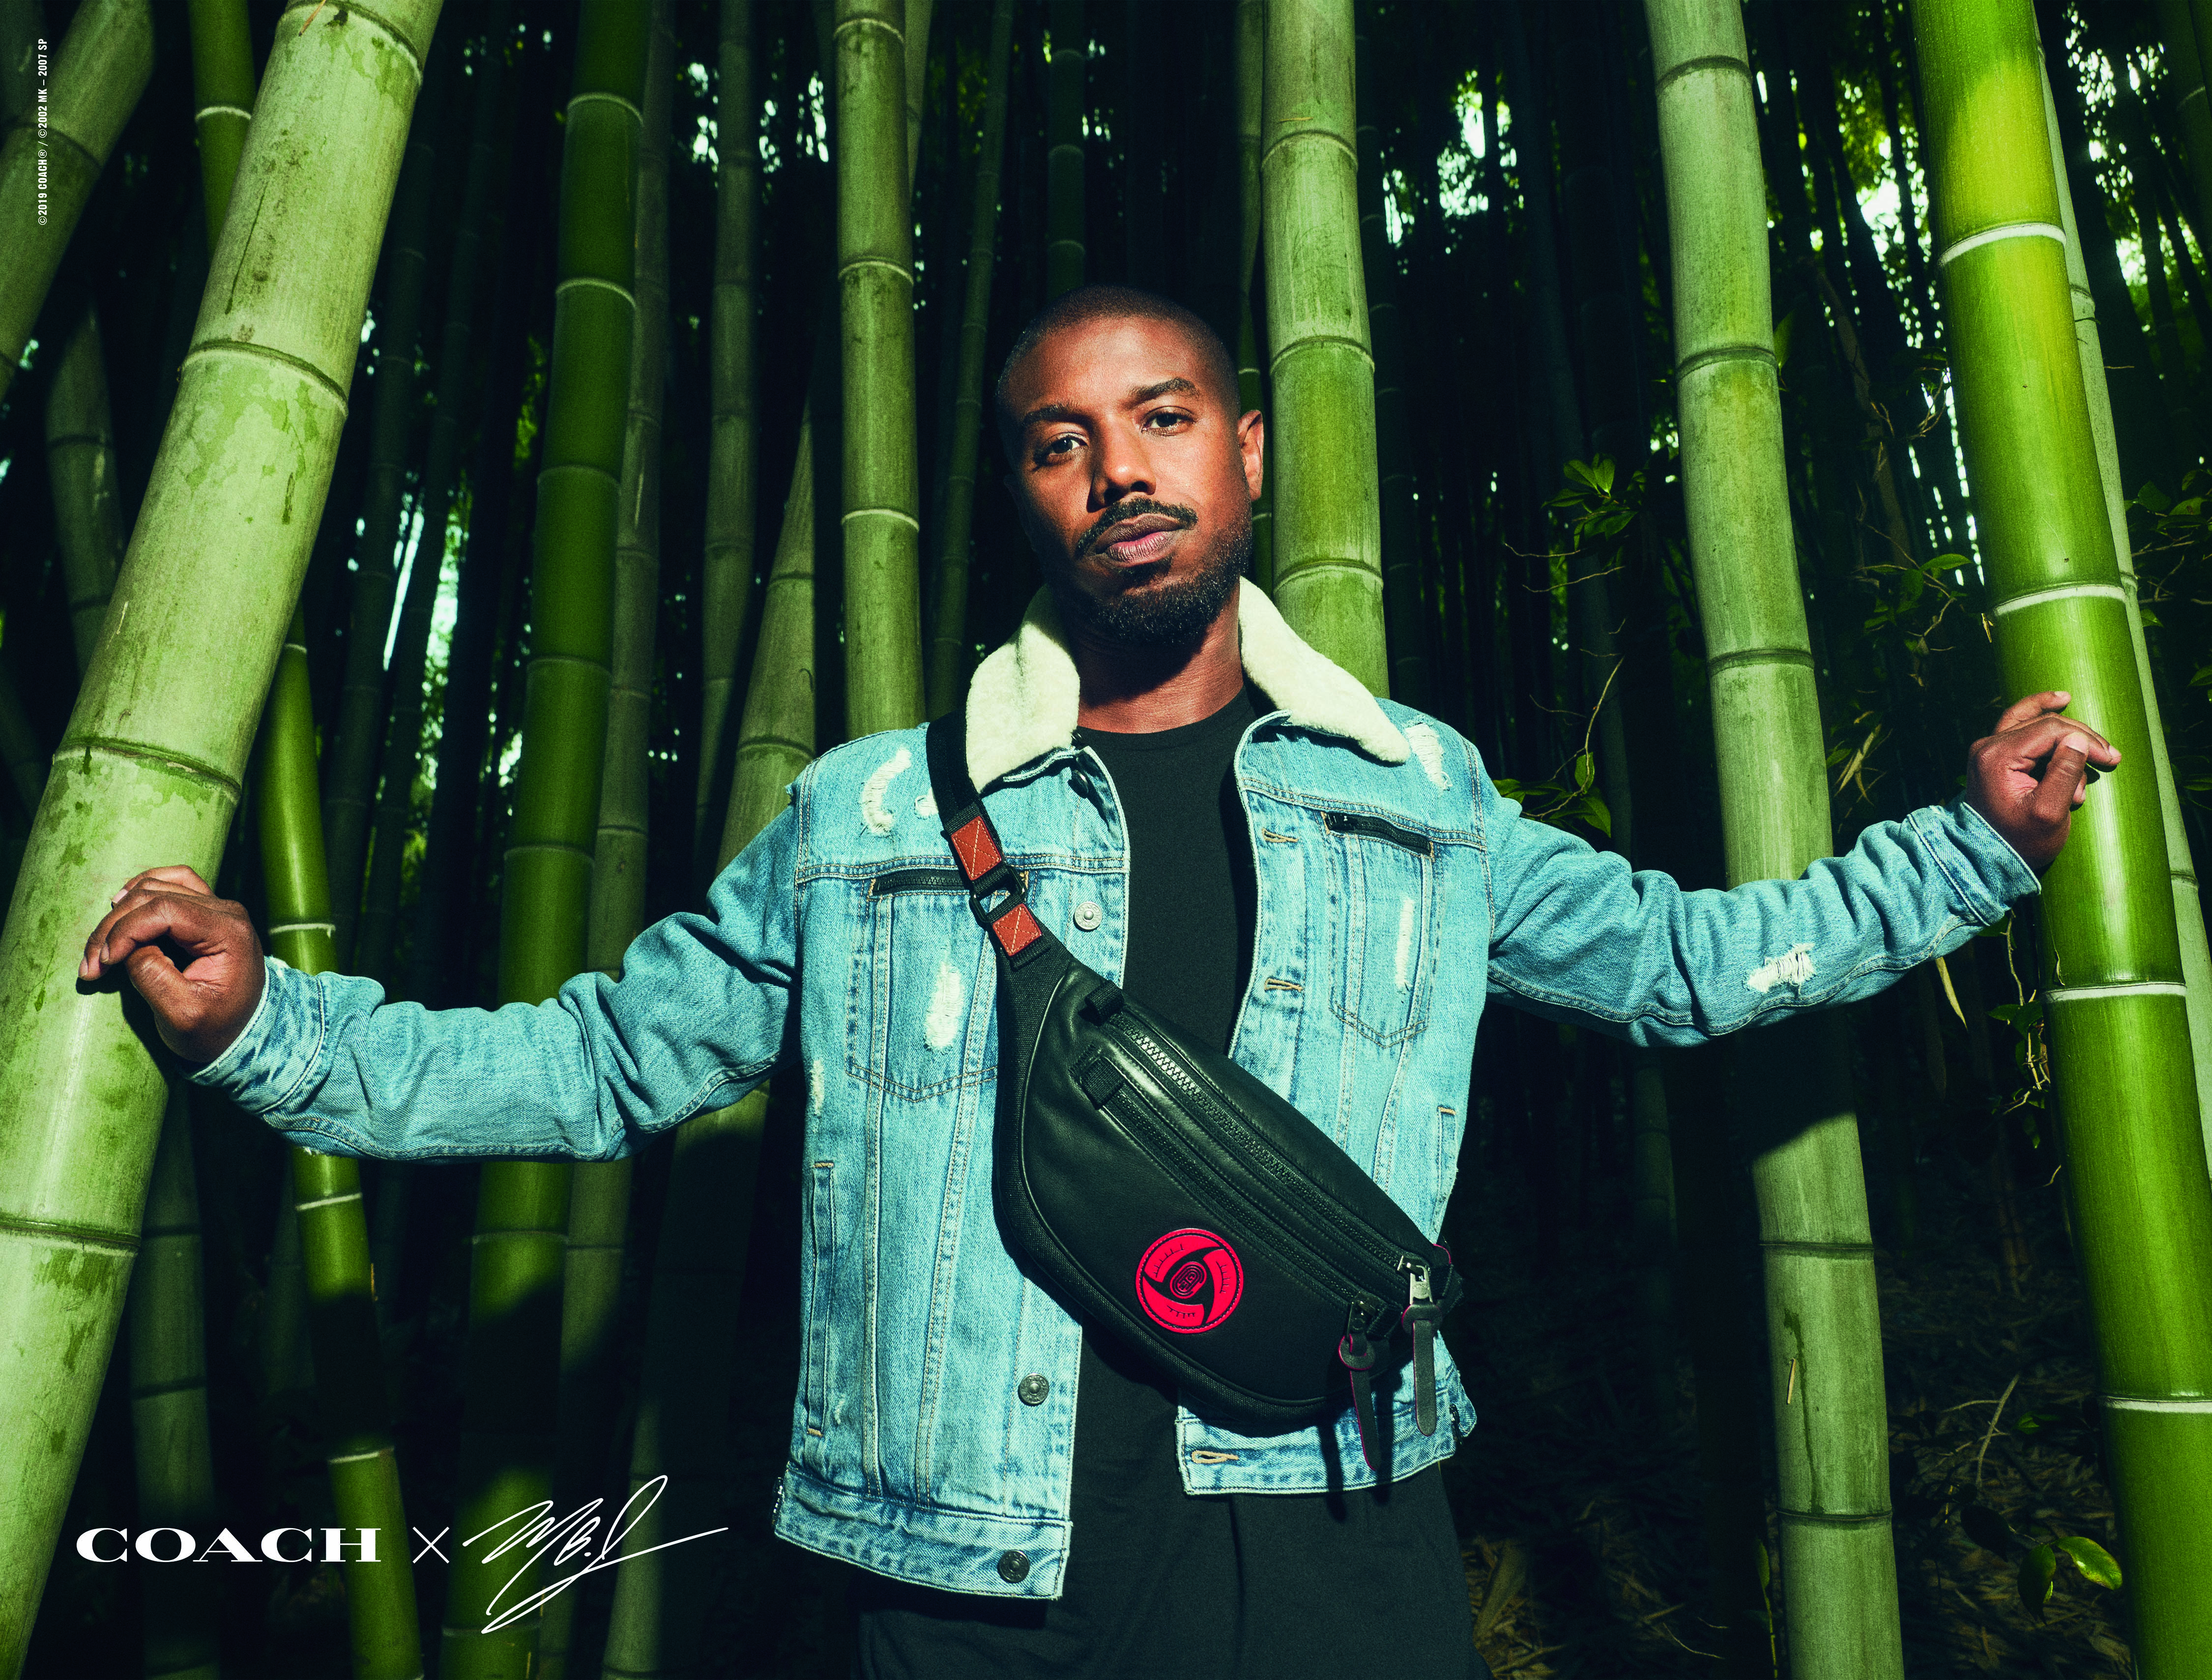 View the entire Naruto-inspired Coach x Michael B. Jordan collection here